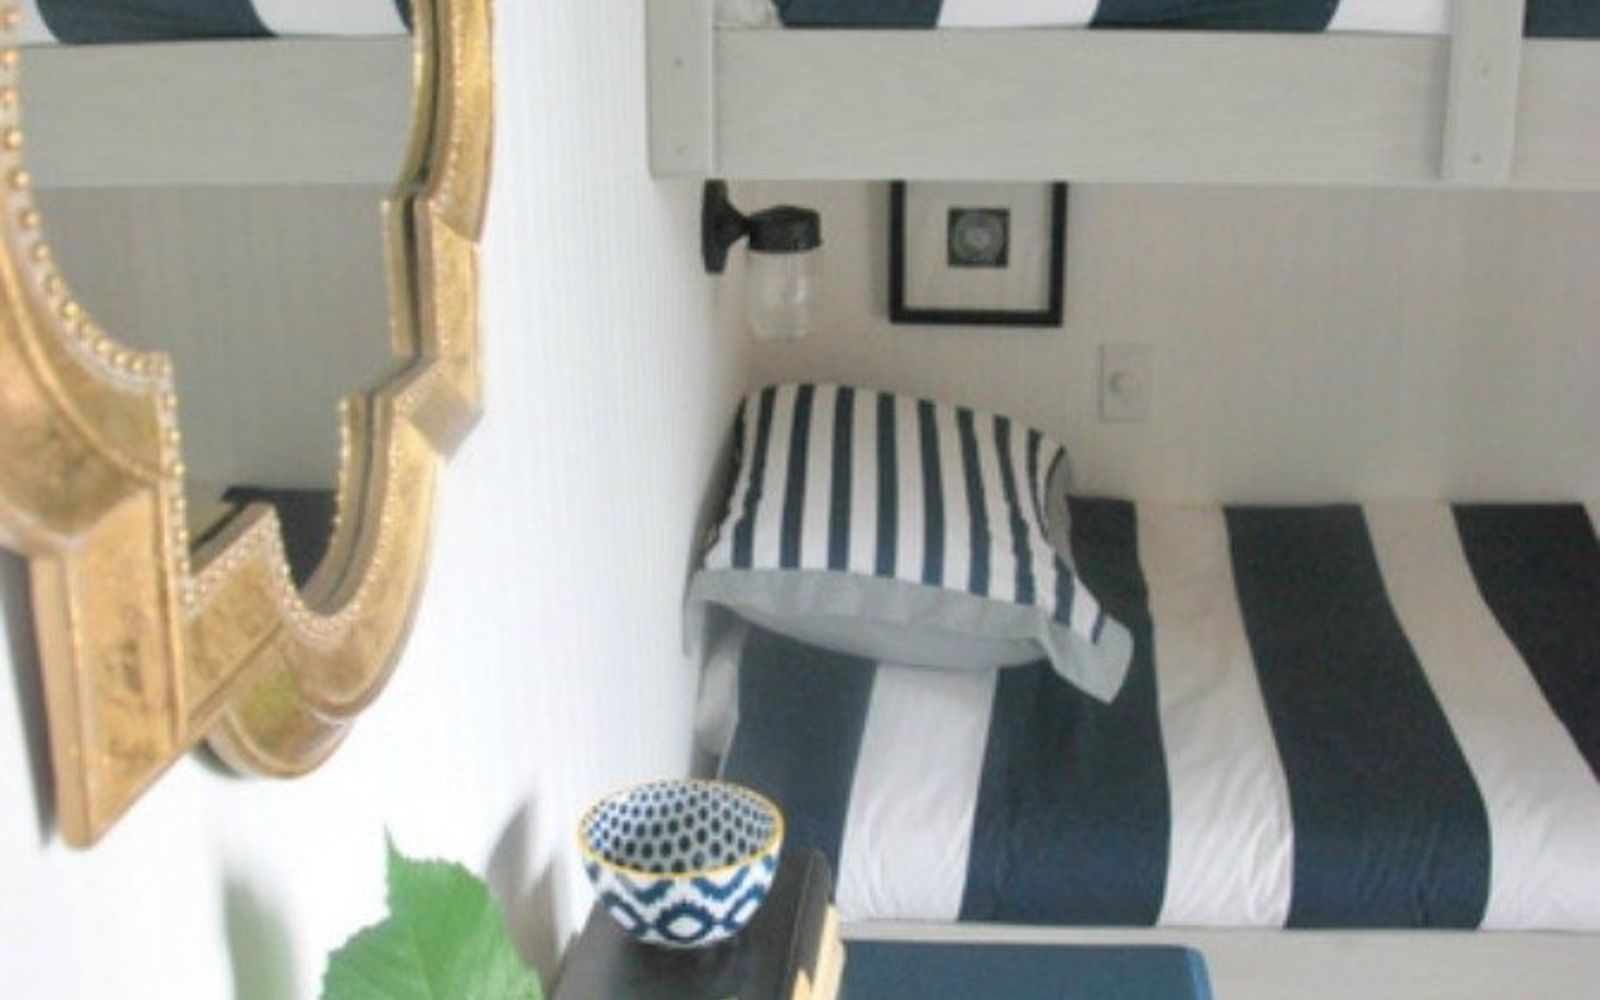 s why everyone is freaking out over these country cottage rooms, bedroom ideas, entertainment rec rooms, home decor, These nautical themed bunk beds are so cute